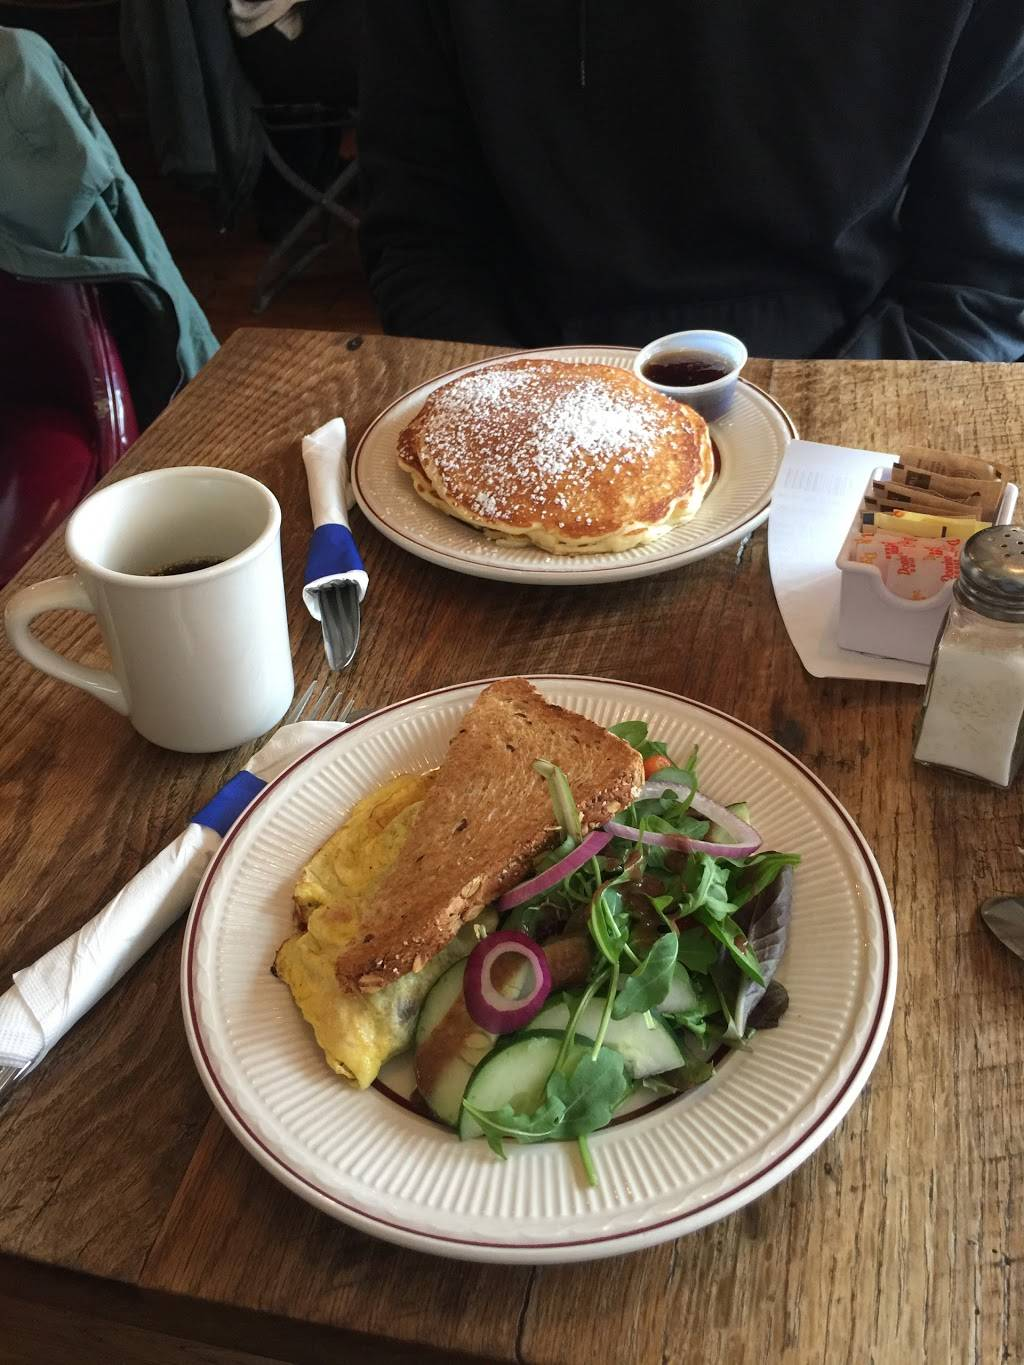 Mannys | cafe | 212 Patchen Ave, Brooklyn, NY 11233, USA | 7184839868 OR +1 718-483-9868